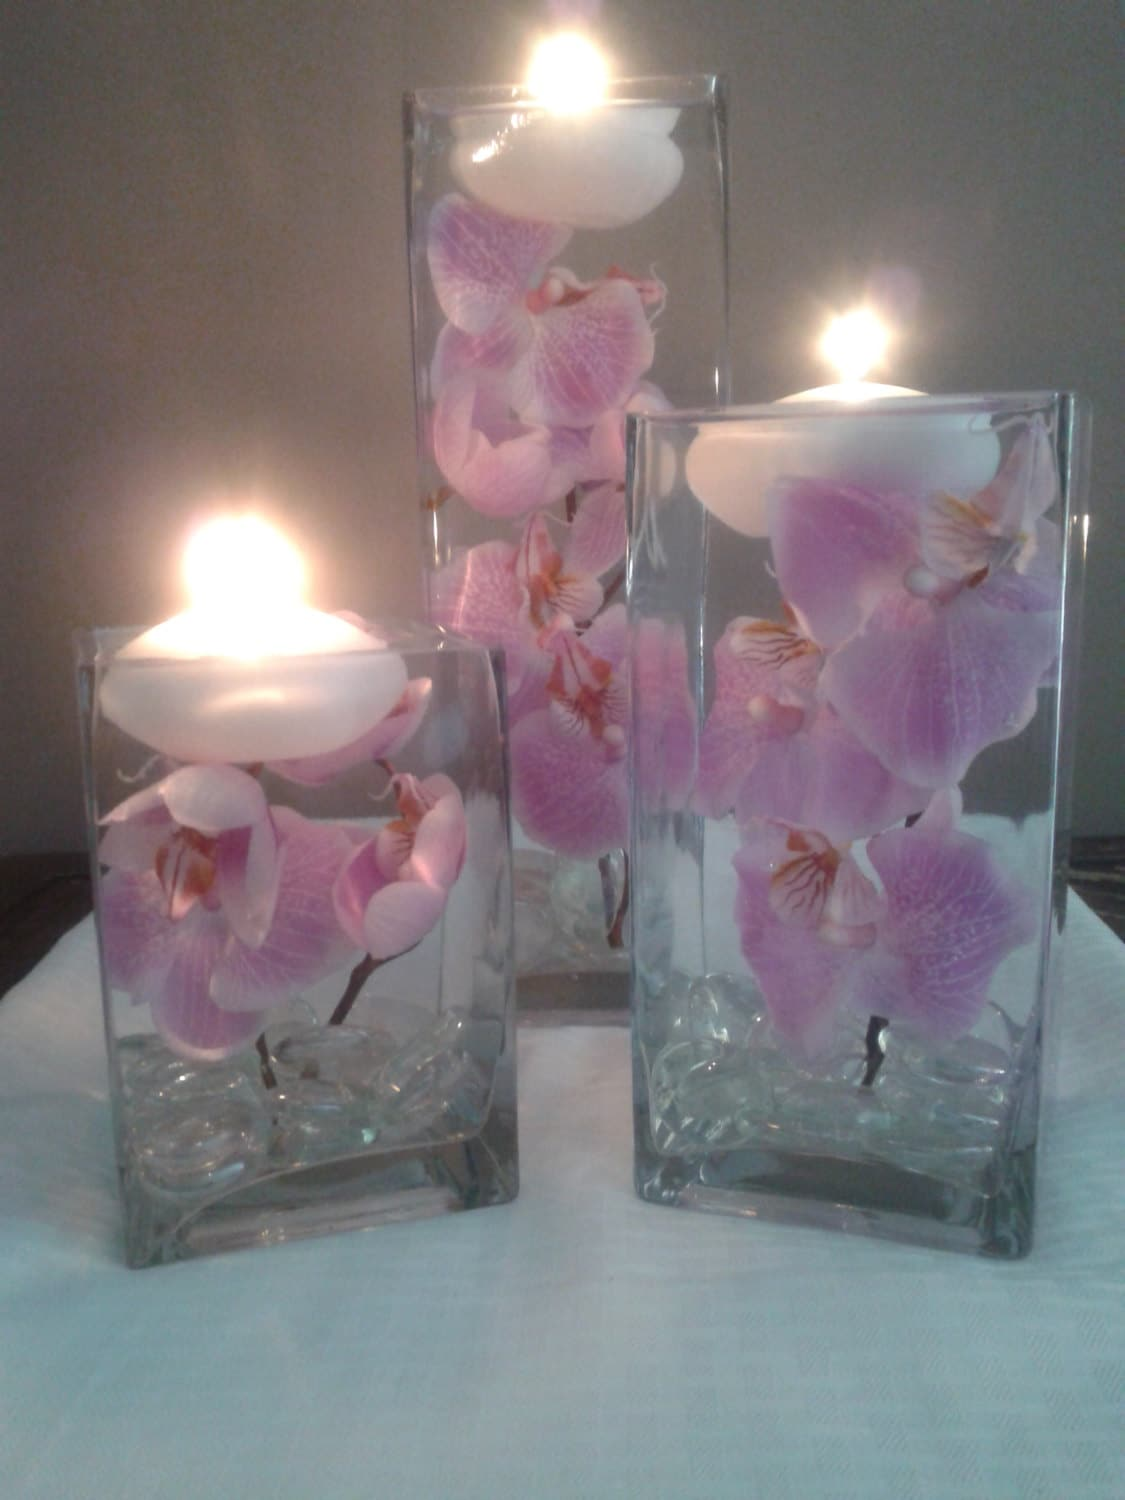 A set of three square vases with purple orchids floating in zoom reviewsmspy